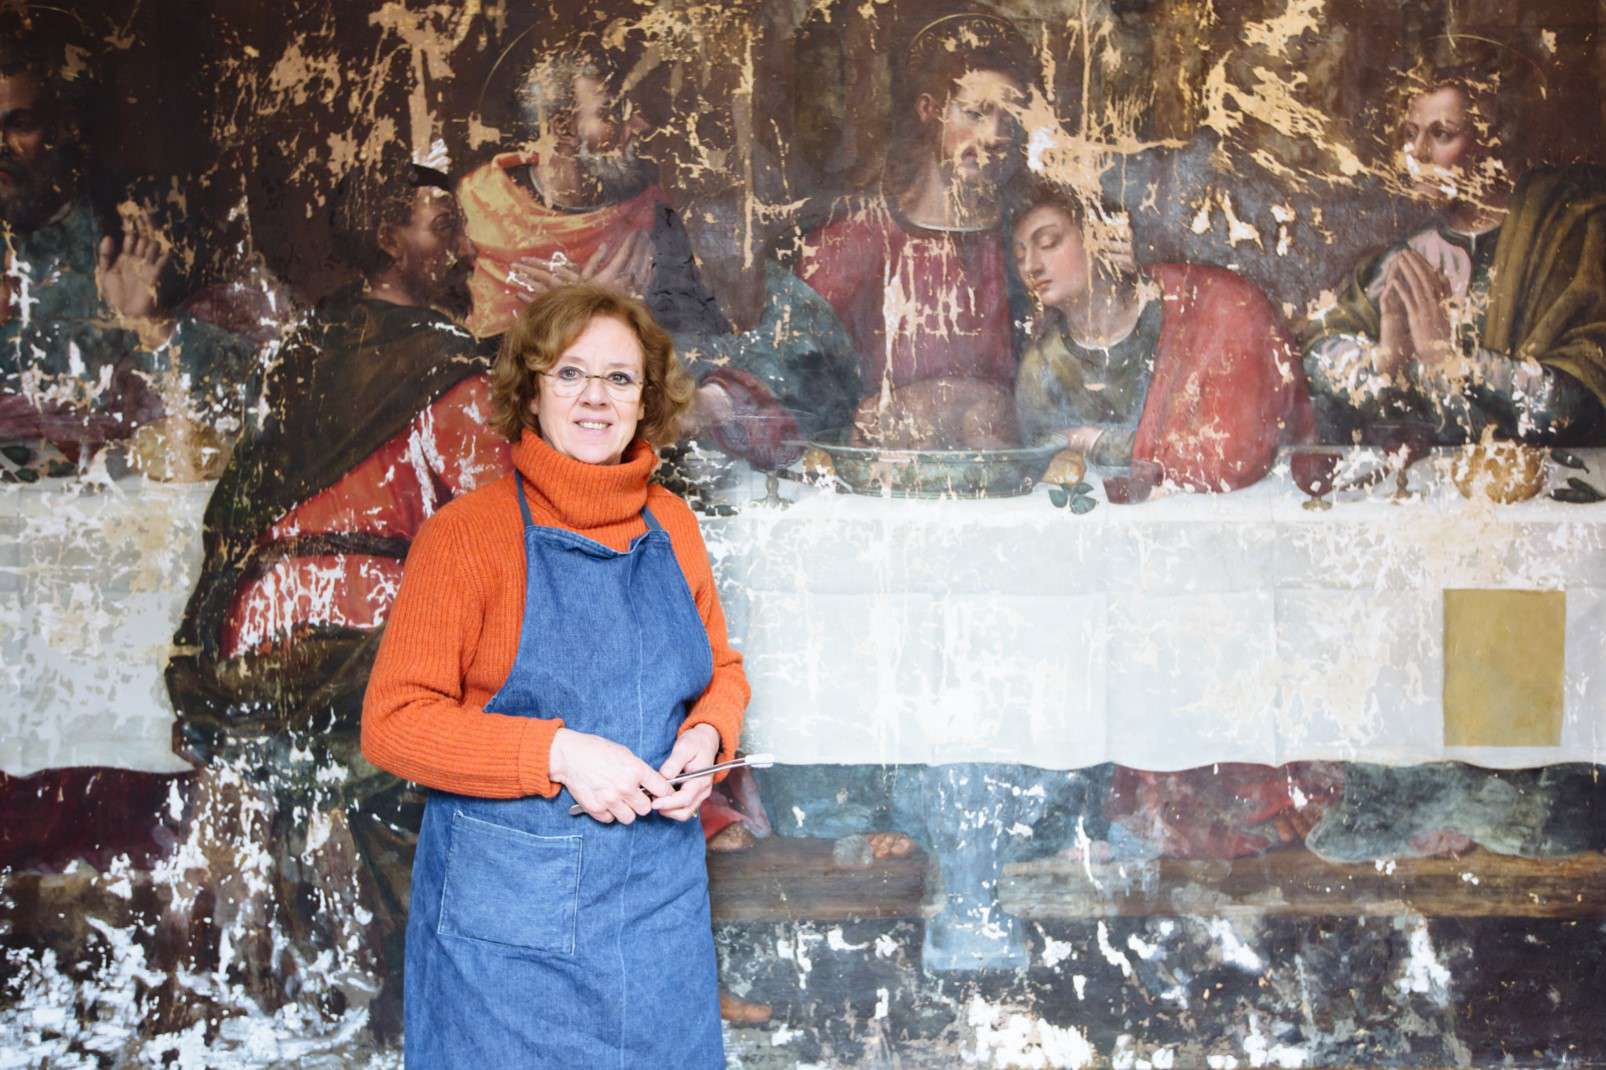 Last Supper by Plautilla Nelli - Adopt an Apostle - Florentine conservator Rossella Lari at the end of phase I, post stucco work